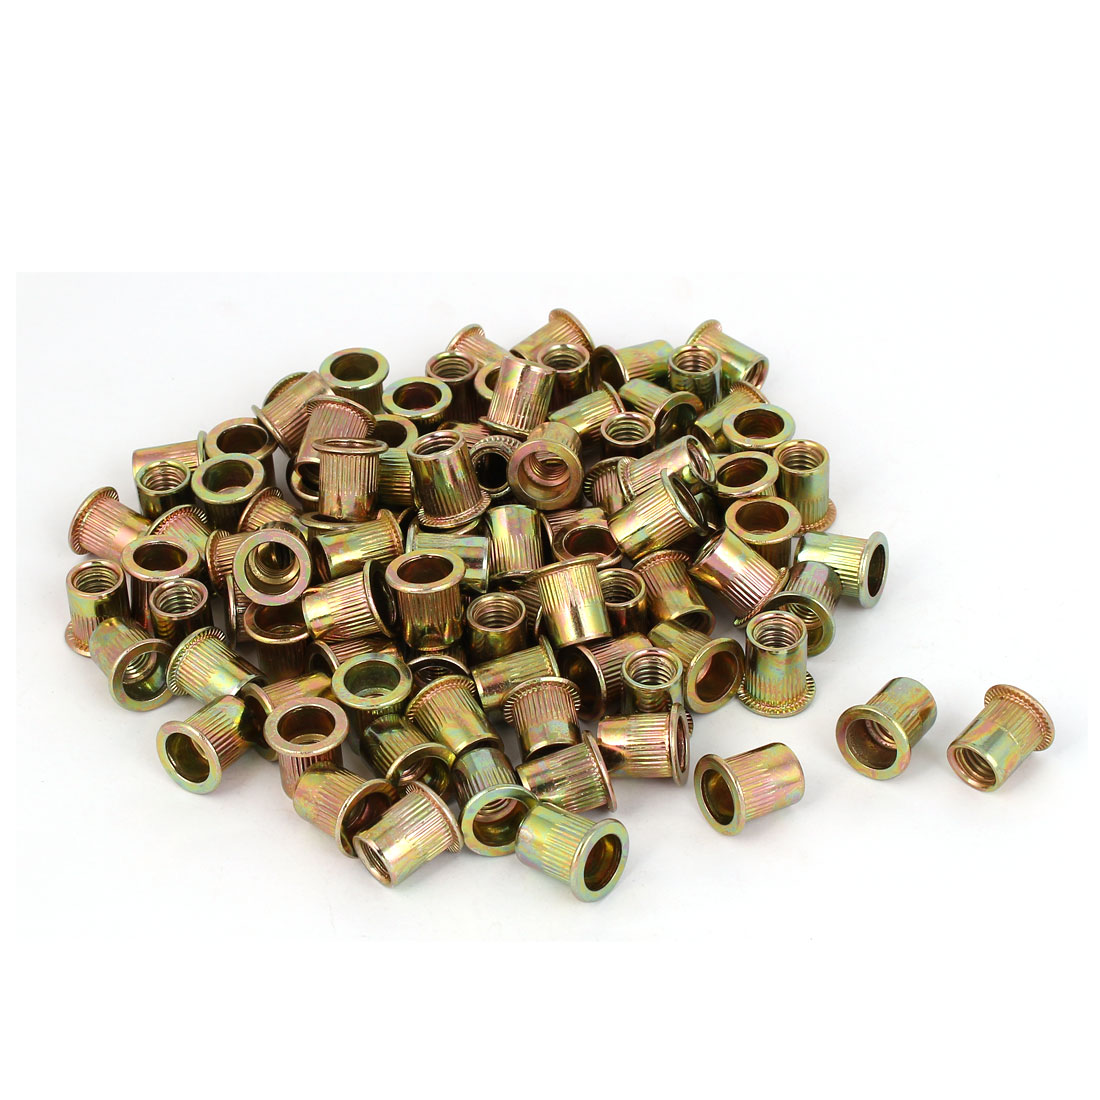 Carbon Steel Zinc Plated Straight Knurled Reduced Head Rivet Nut Insert Nutsert Bronze Tone M8x14mm 100pcs